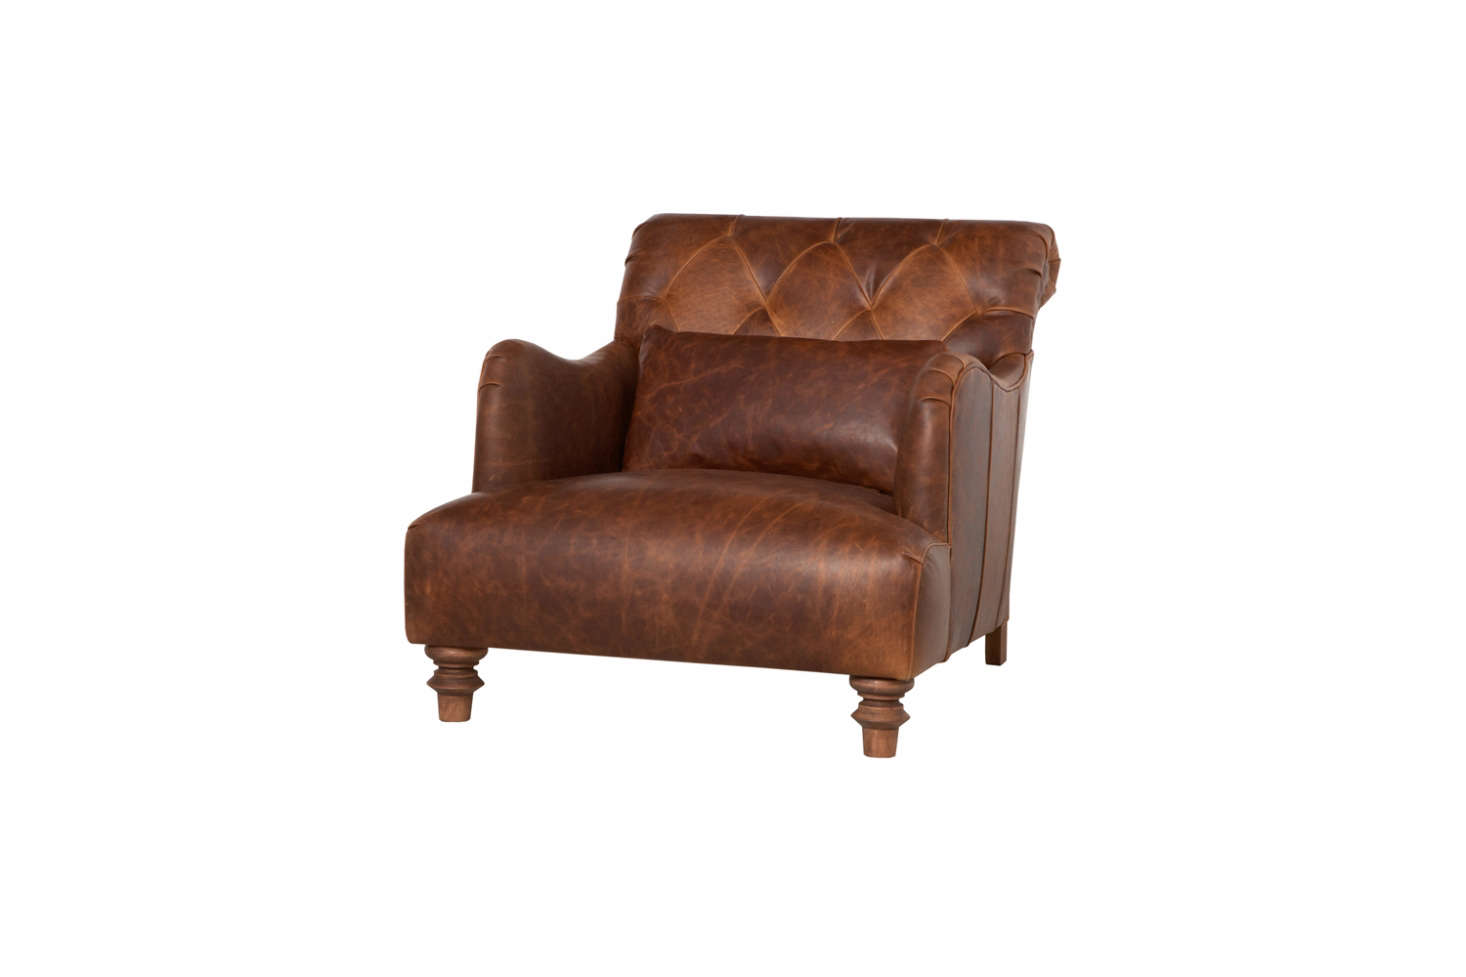 The Cisco Brothers Acacia Leather Chair Has A 28.5 Inch Seat Depth And Is  Available